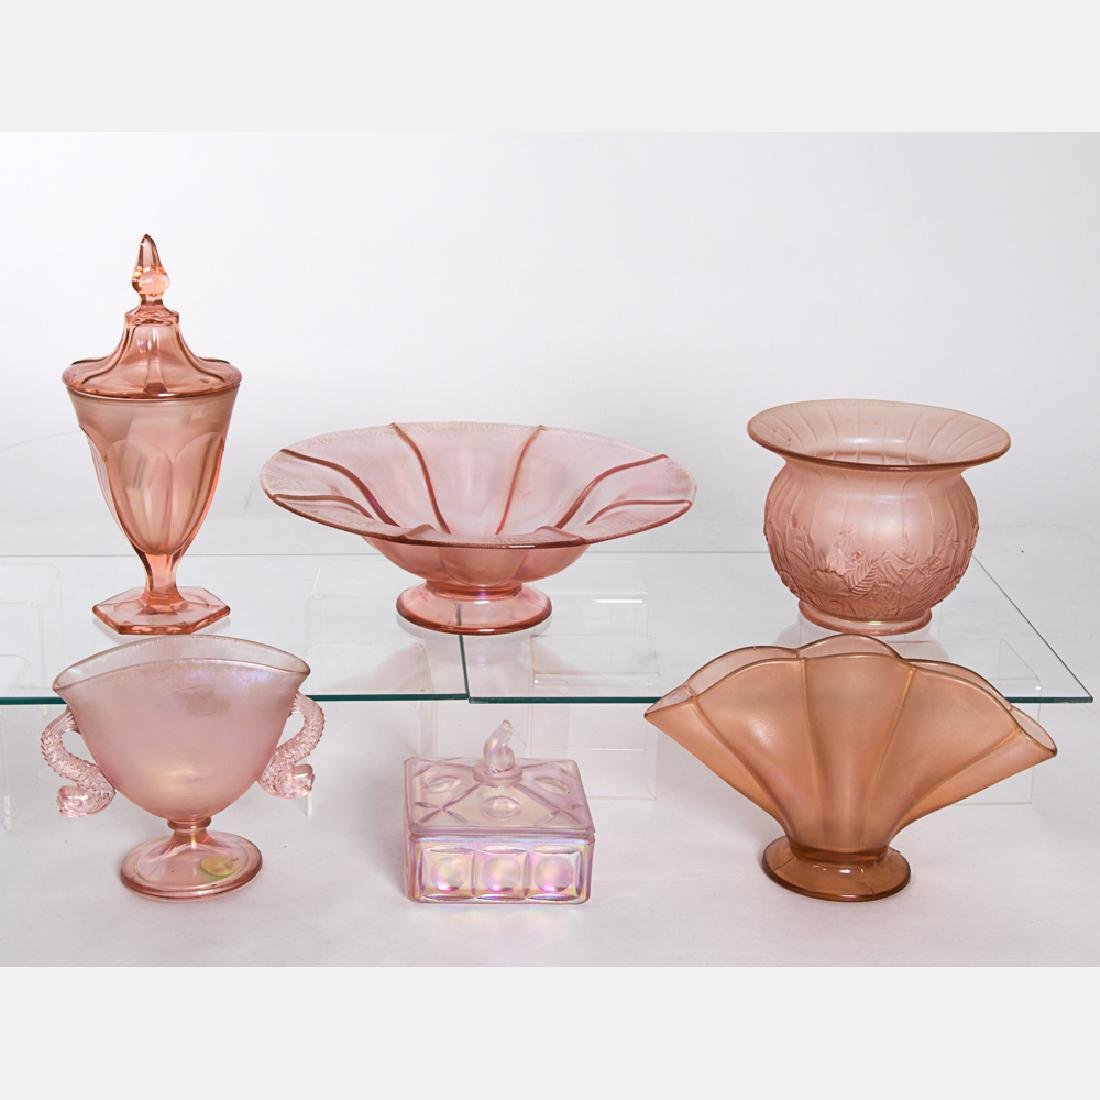 A Miscellaneous Collection of Fenton Stretch Glass